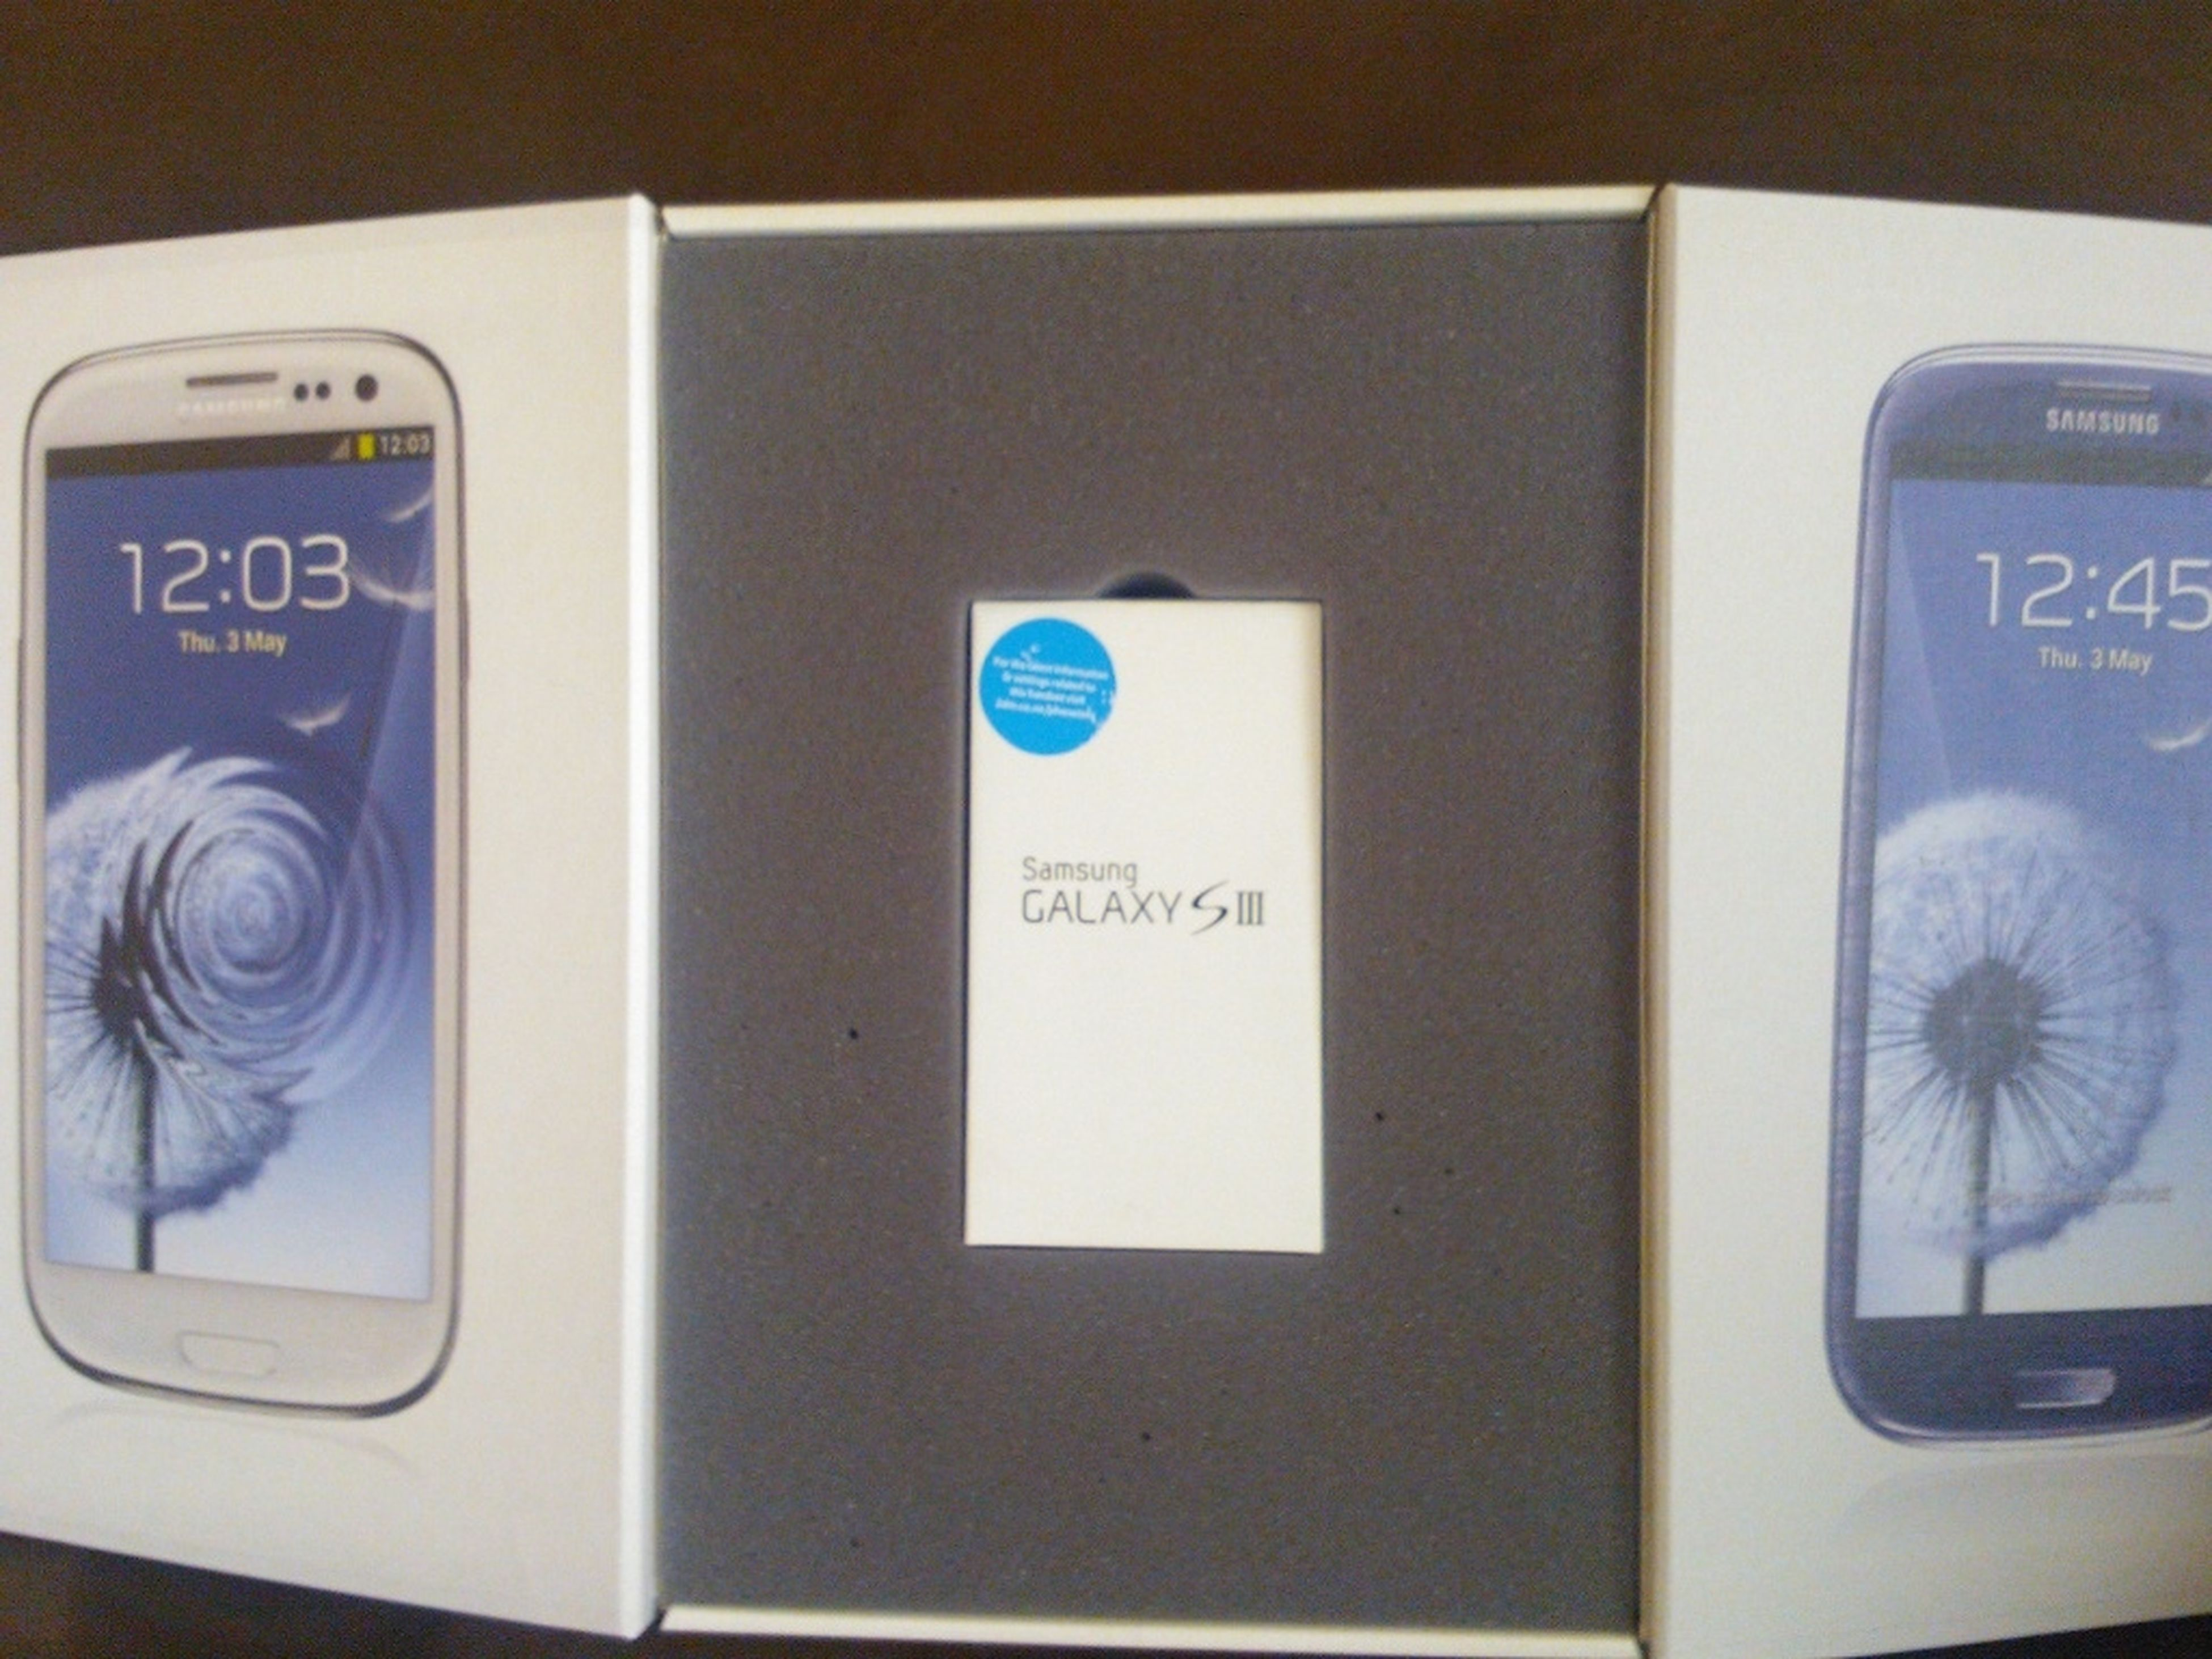 Galaxy SIII Arrived Just In Time. Like It Had Come From A Mountain Peak. Happy.